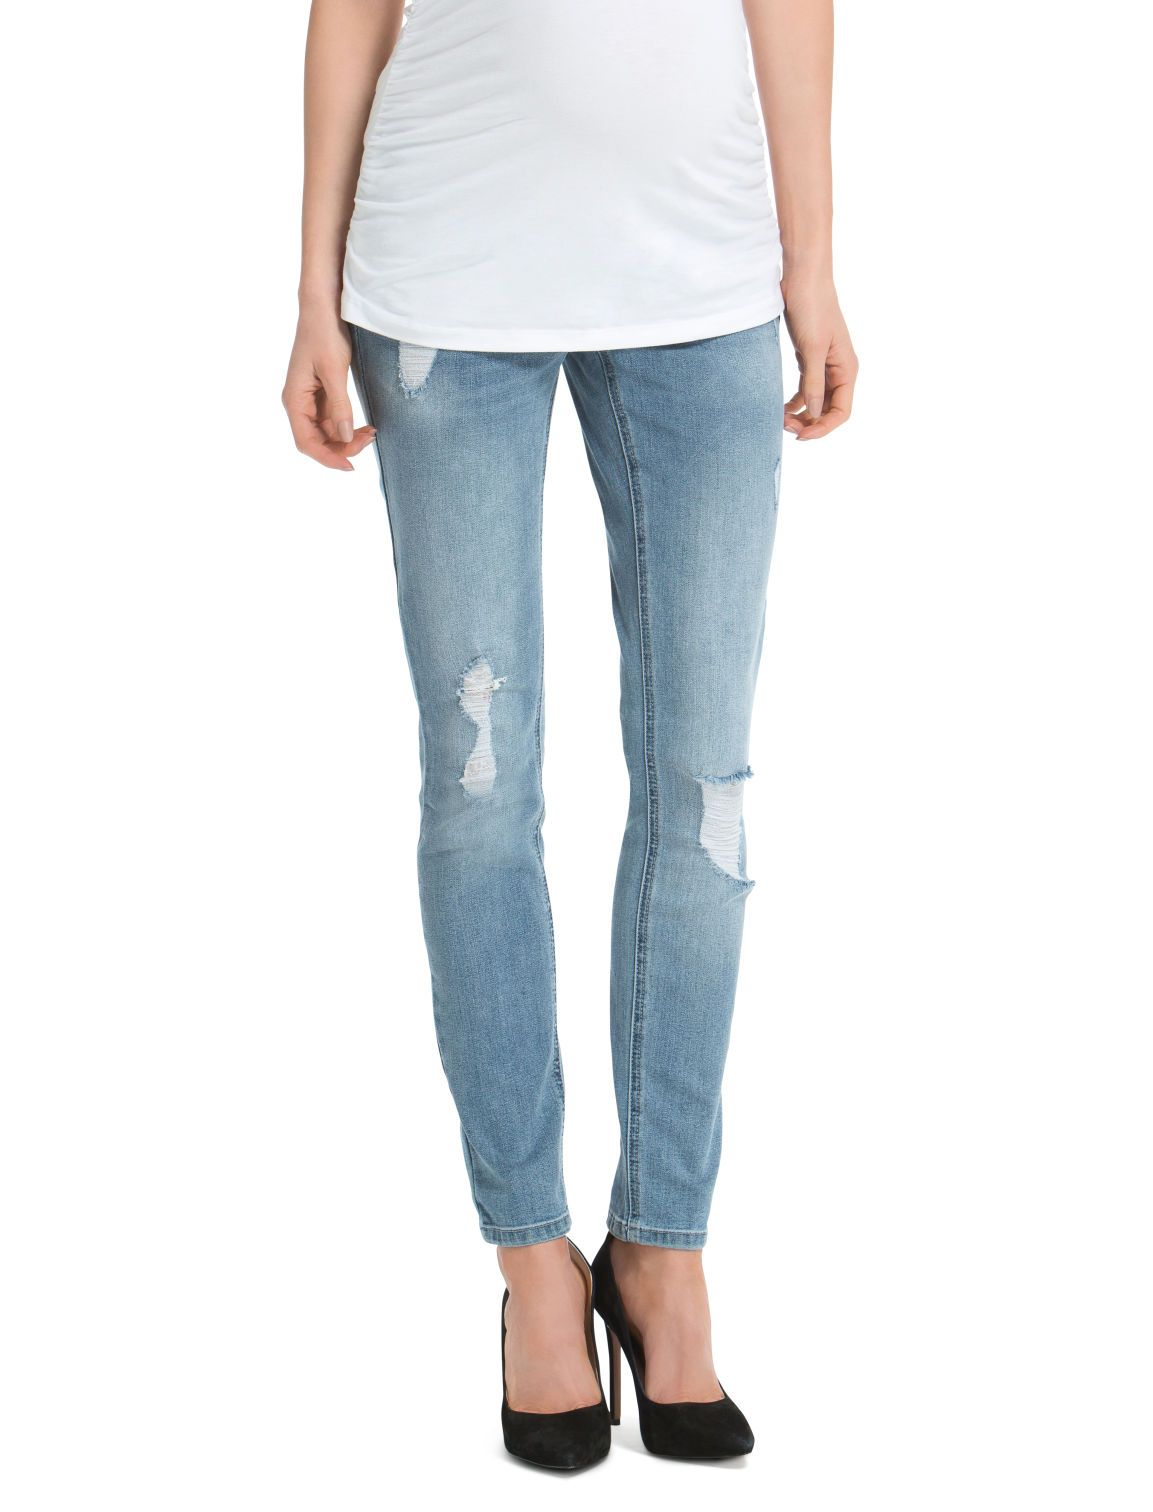 54c5d93f5a6bc The destructed jean | light wash secret fit belly 5 pocket skinny leg  maternity jean by Jessica Simpson available at Destination Maternity